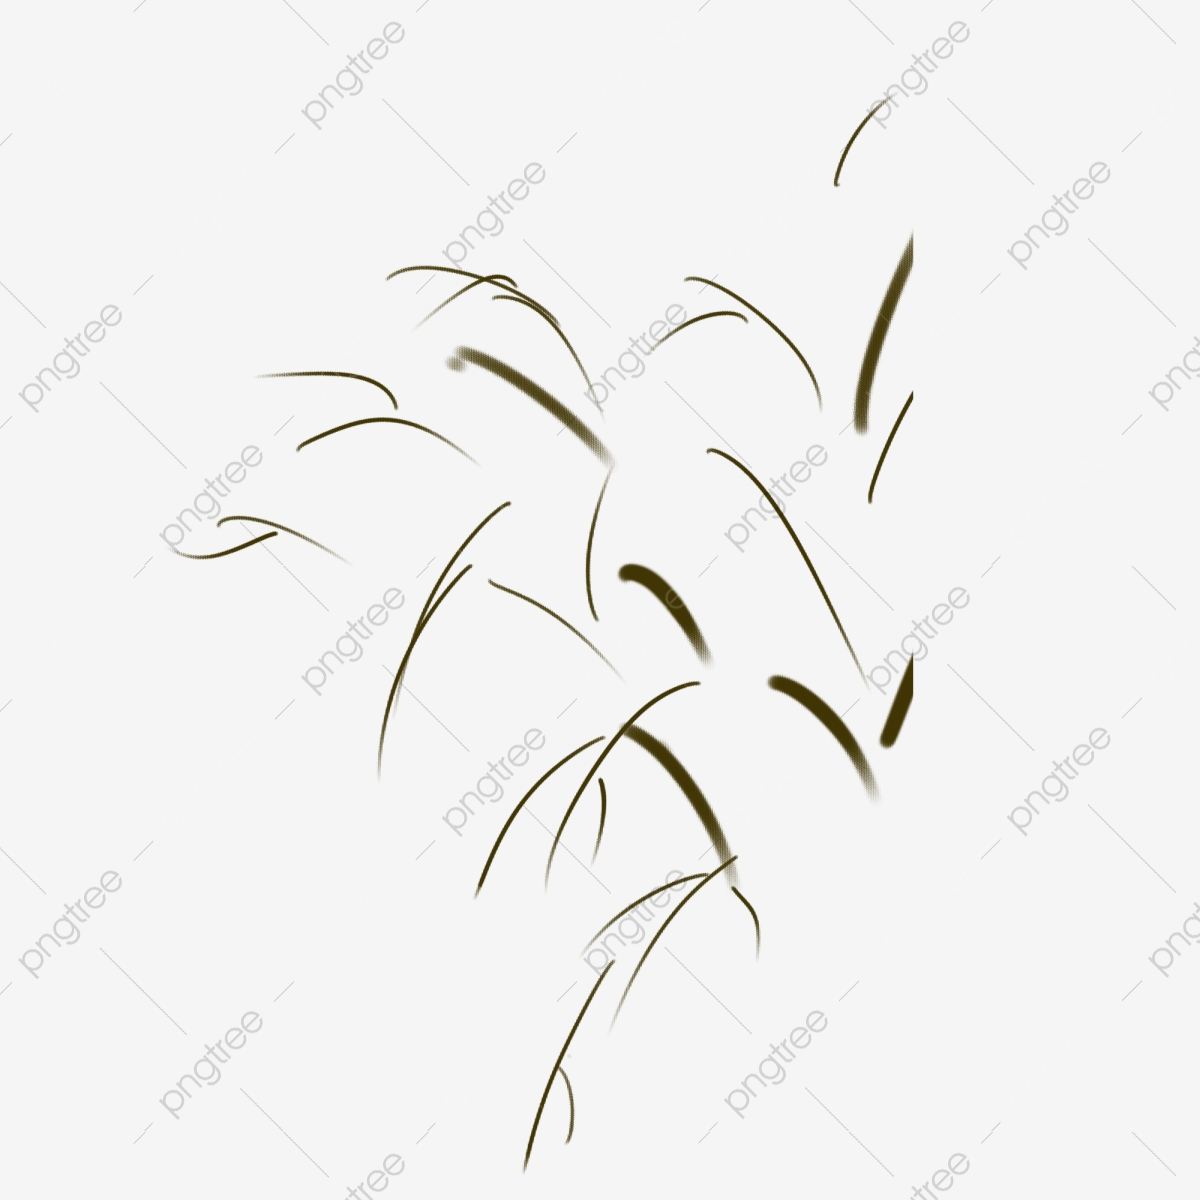 A Wandering Reed A Clump Of Dense Drifting Png Transparent Clipart Image And Psd File For Free Download